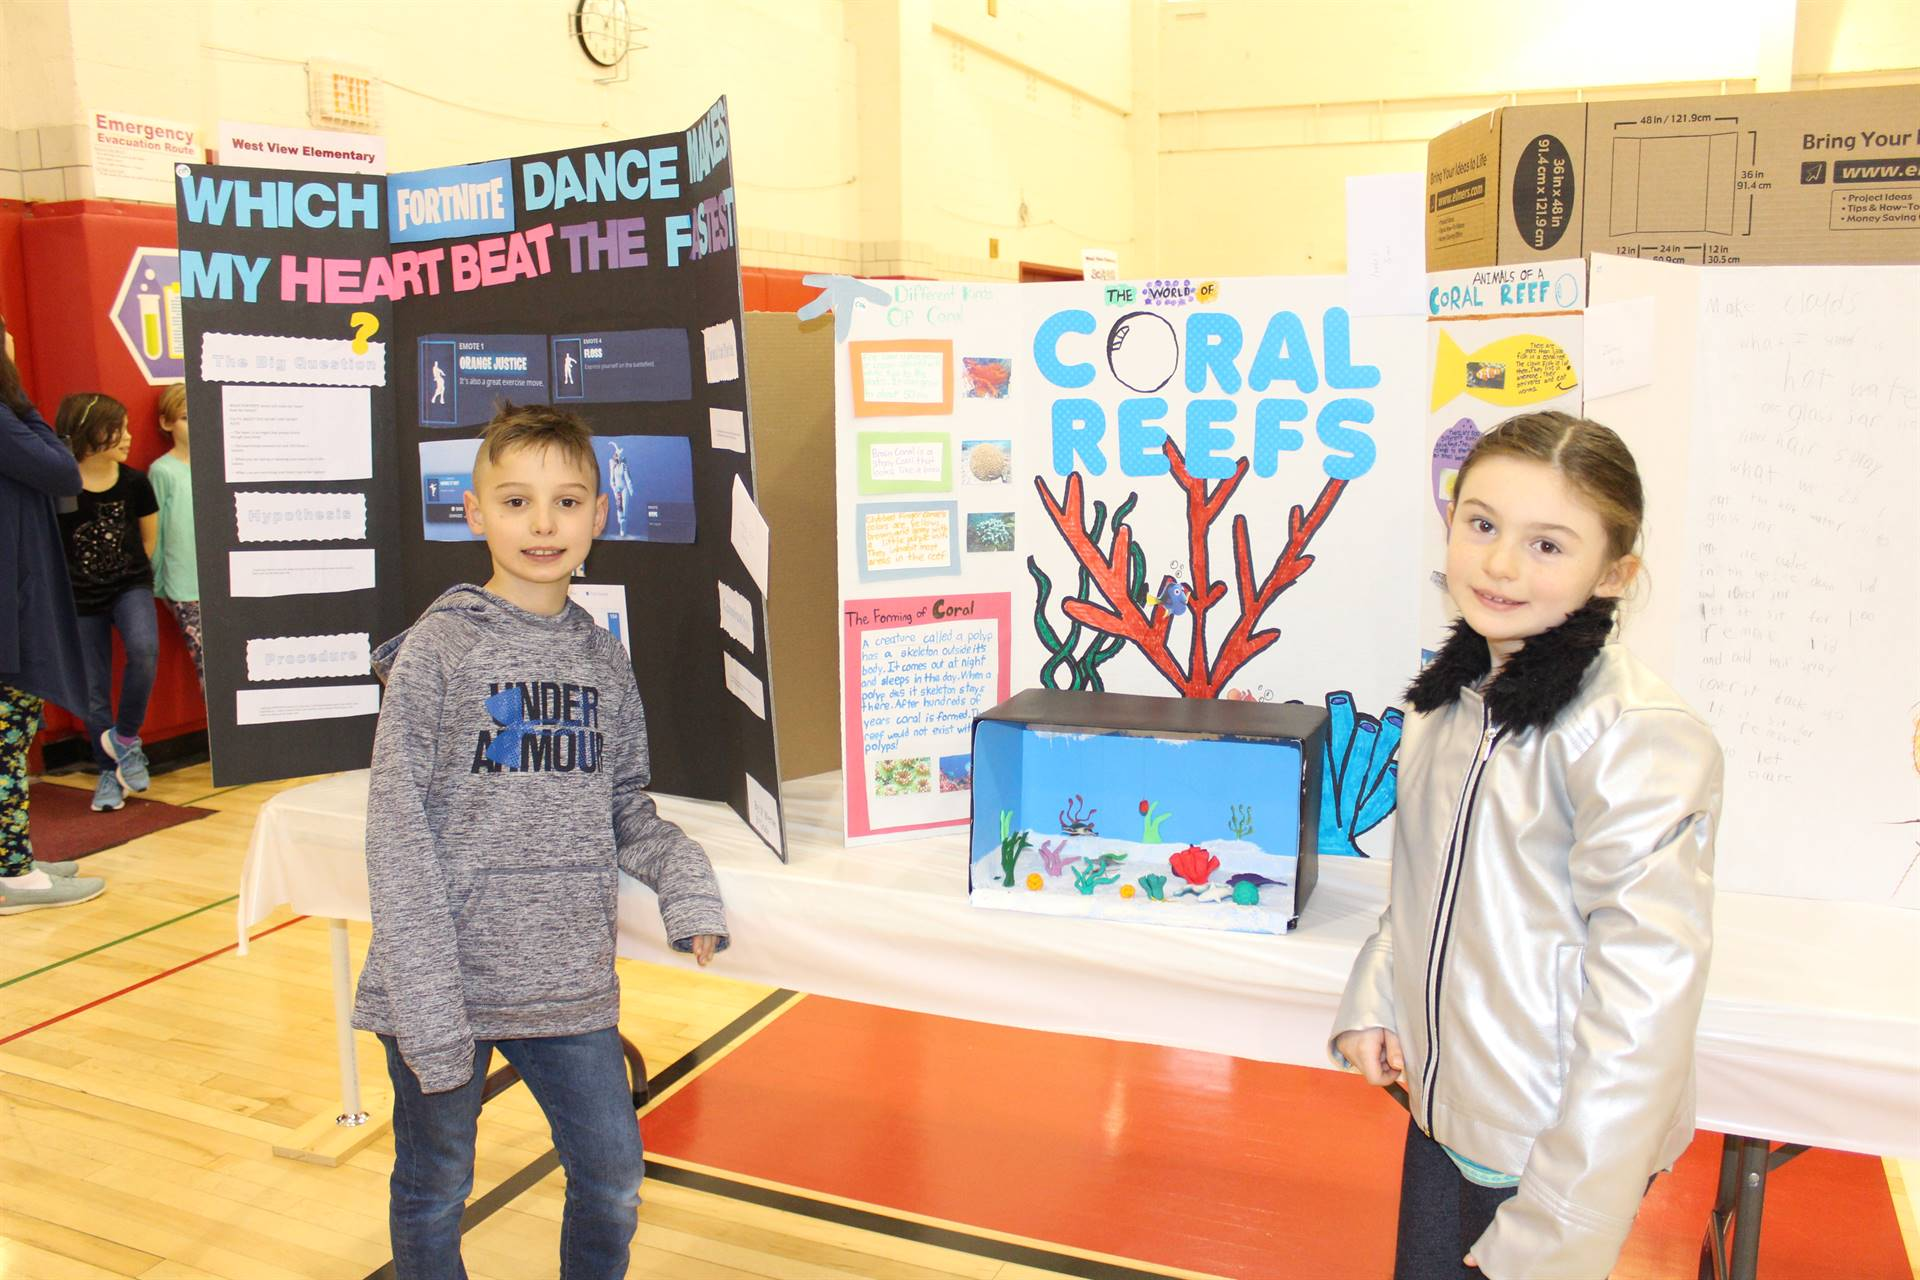 Science Fair Entry with Student